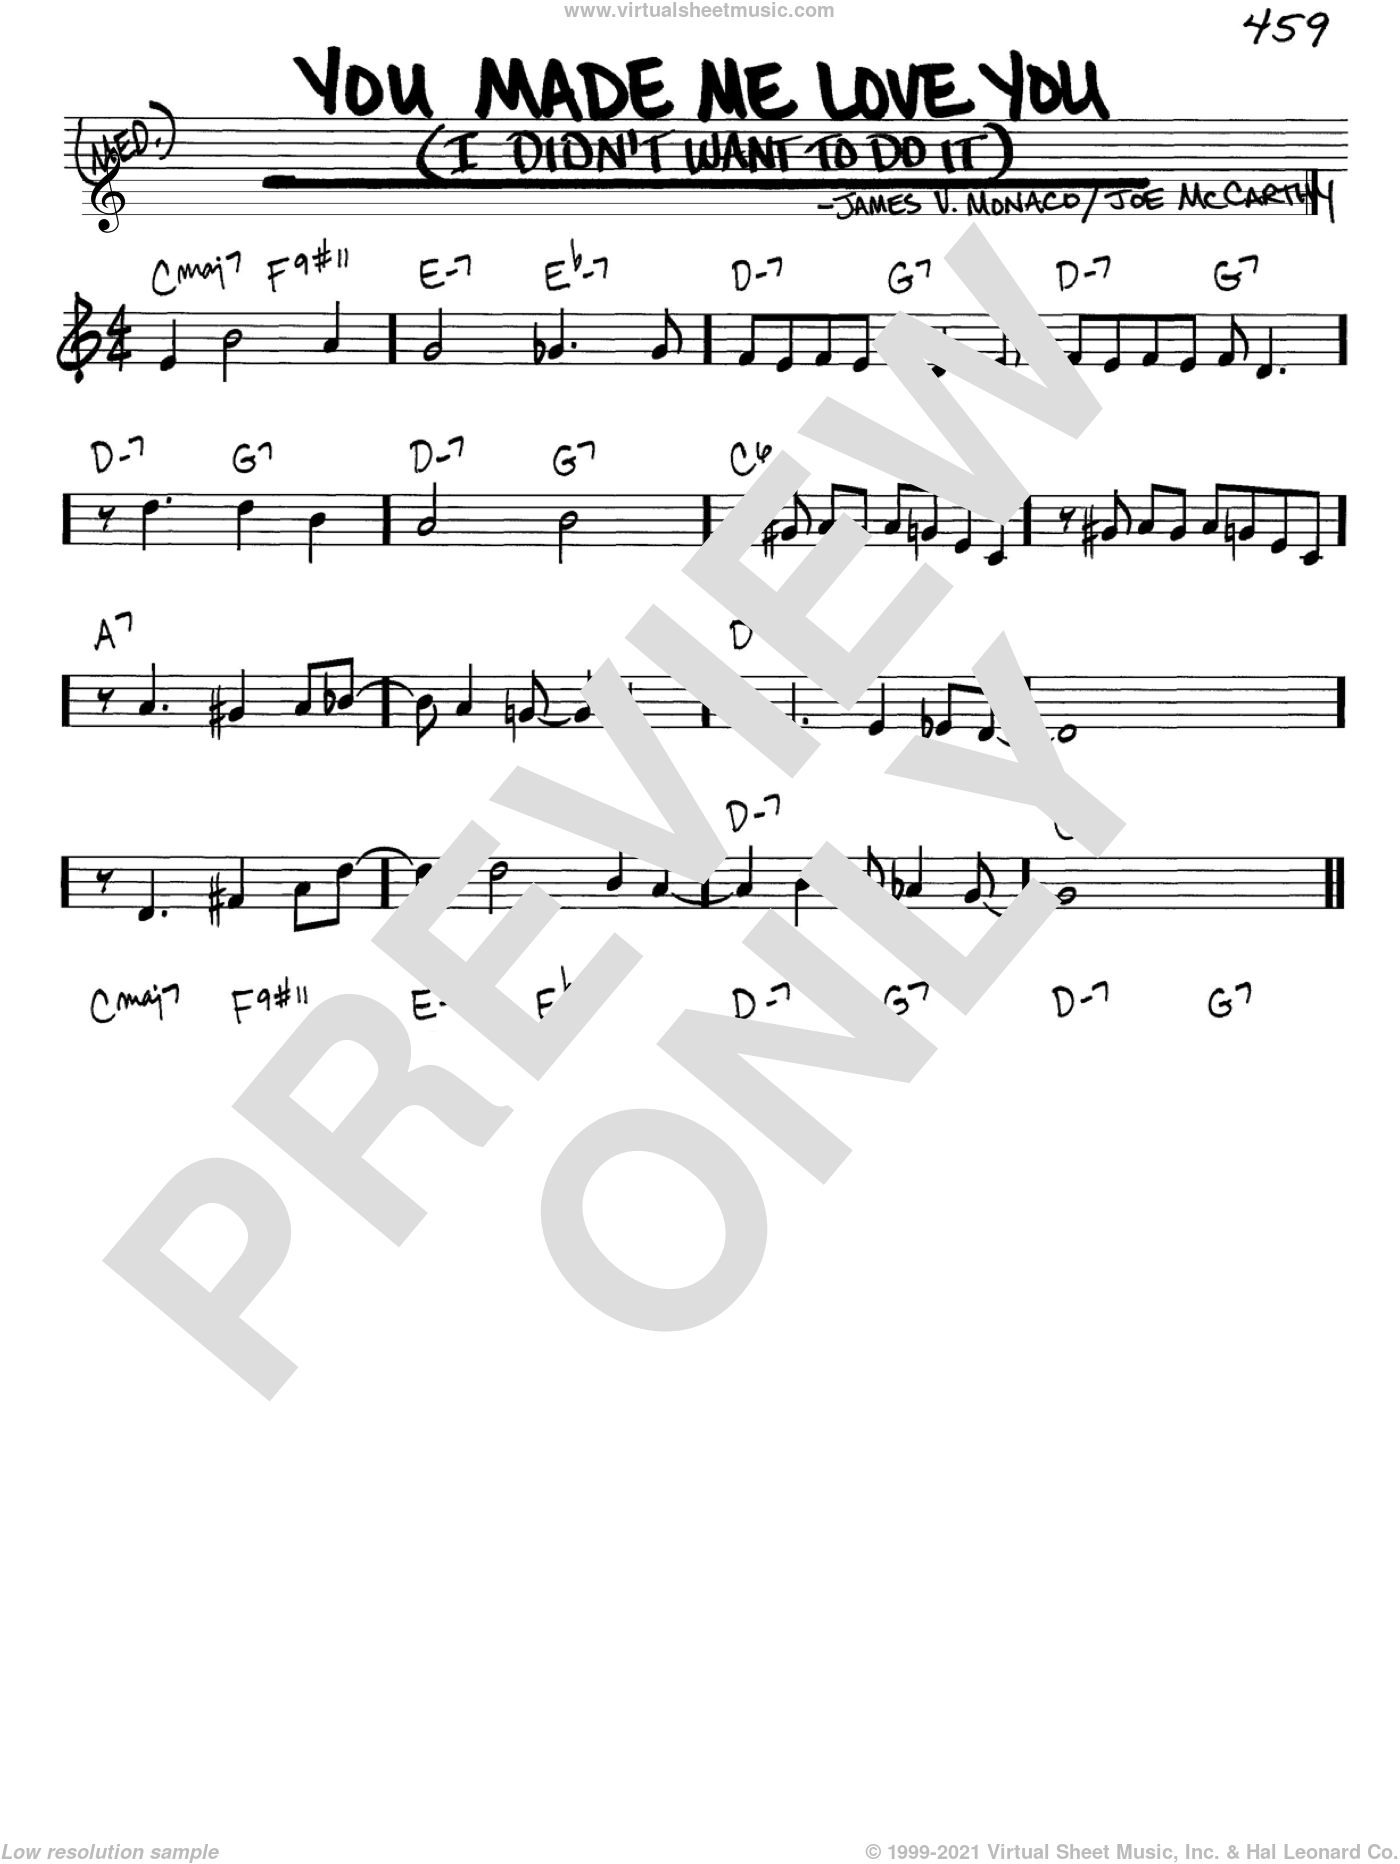 You Made Me Love You (I Didn't Want To Do It) sheet music for voice and other instruments (C) by James Monaco and Joe McCarthy. Score Image Preview.